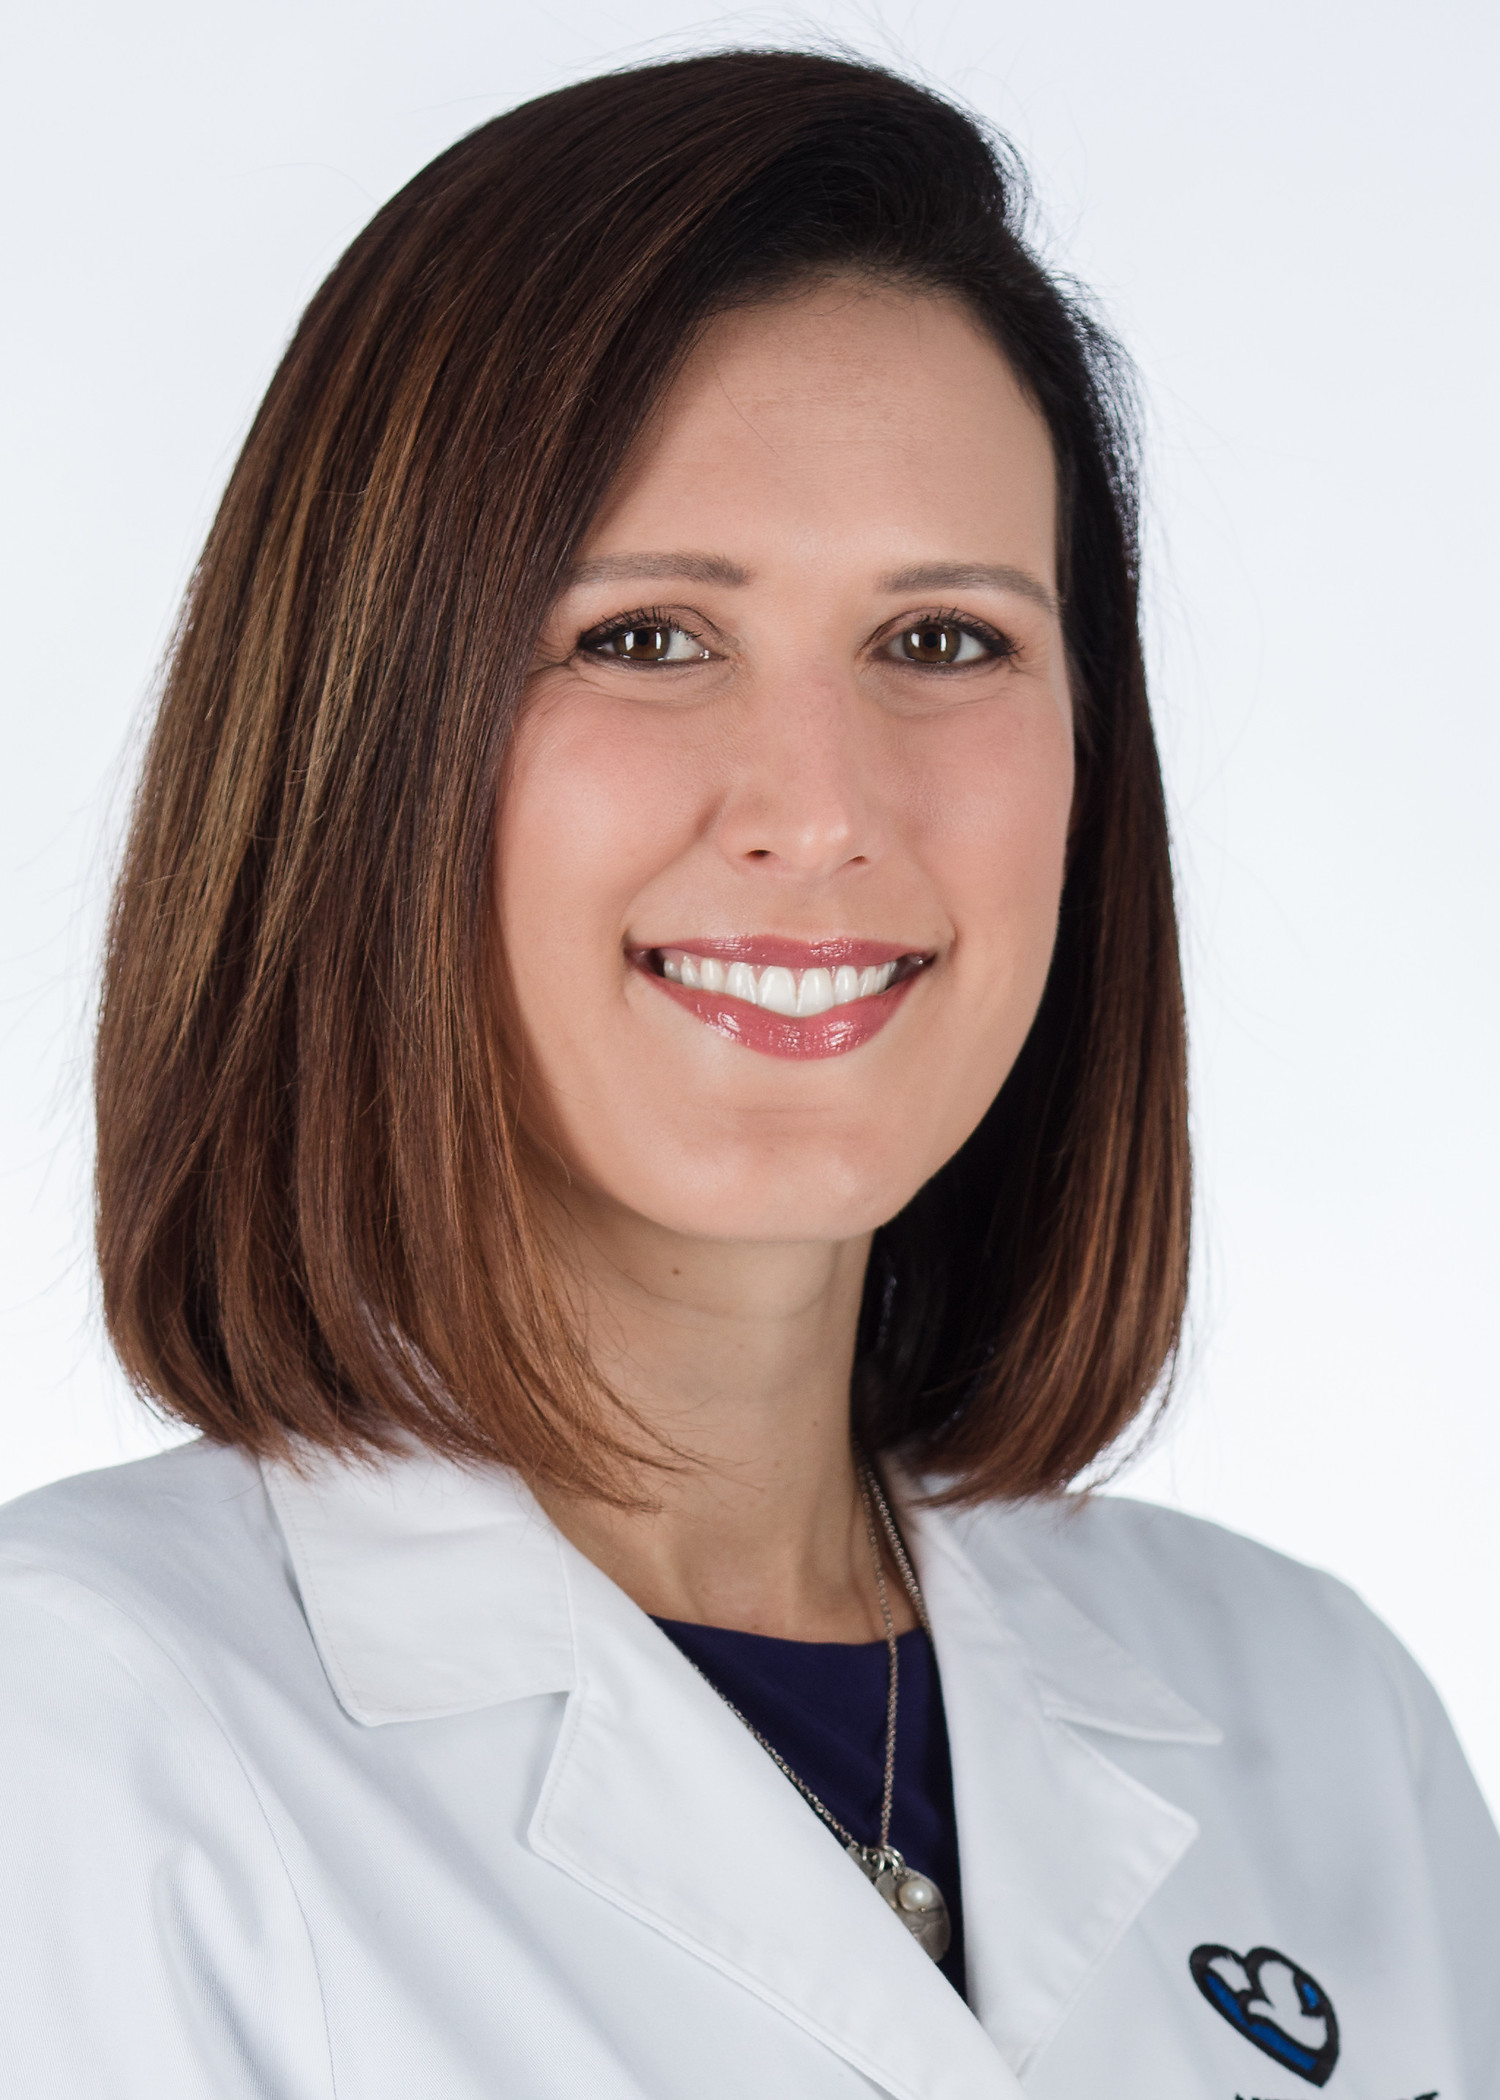 Photo of Emily Patel, MD, FACOG